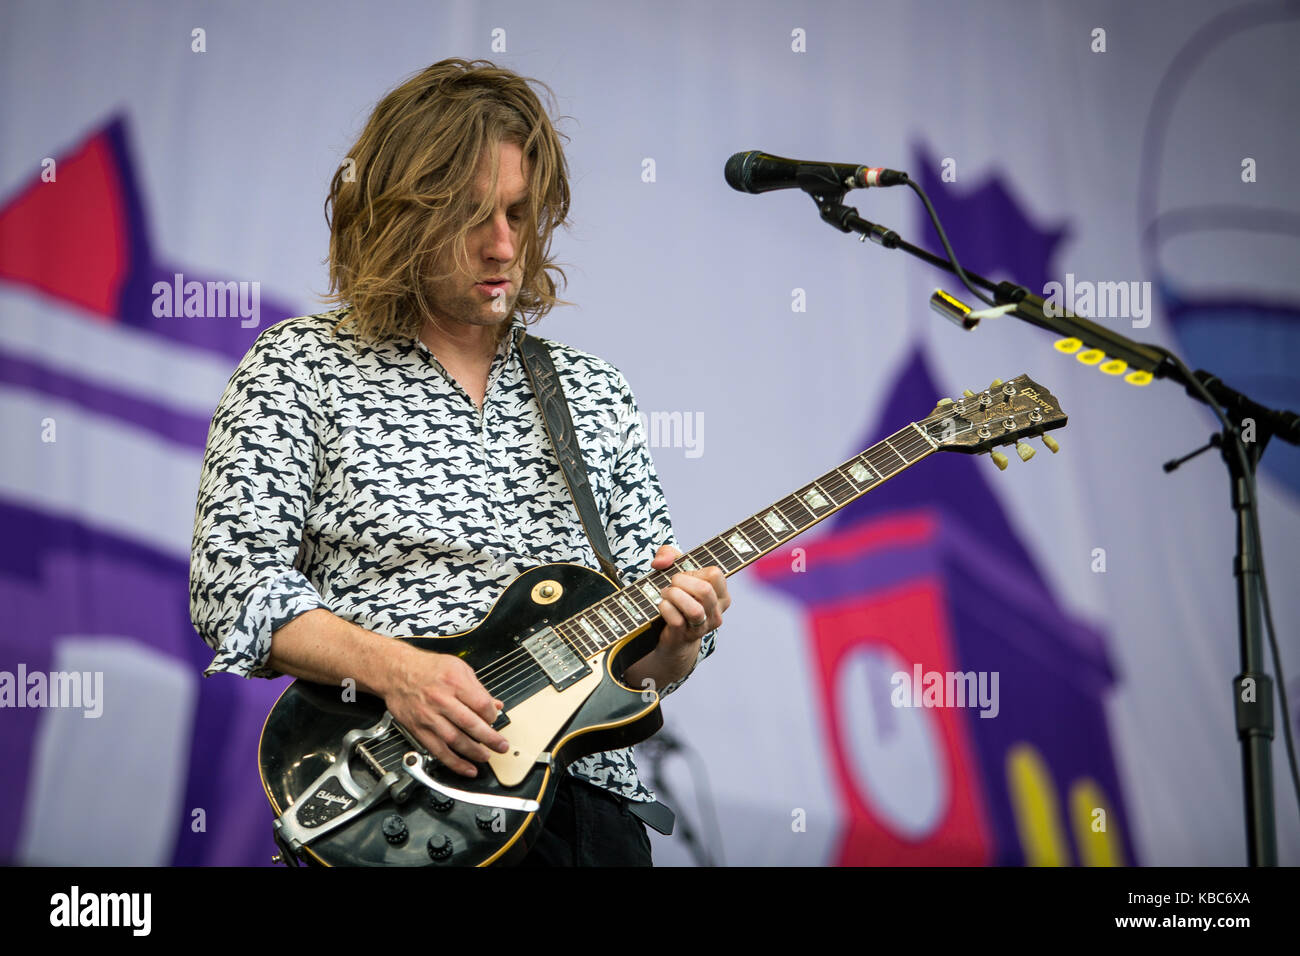 The American rock band My Morning Jacket performs a live concert at the music festival Lollapalooza 2015 in Berlin. Stock Photo